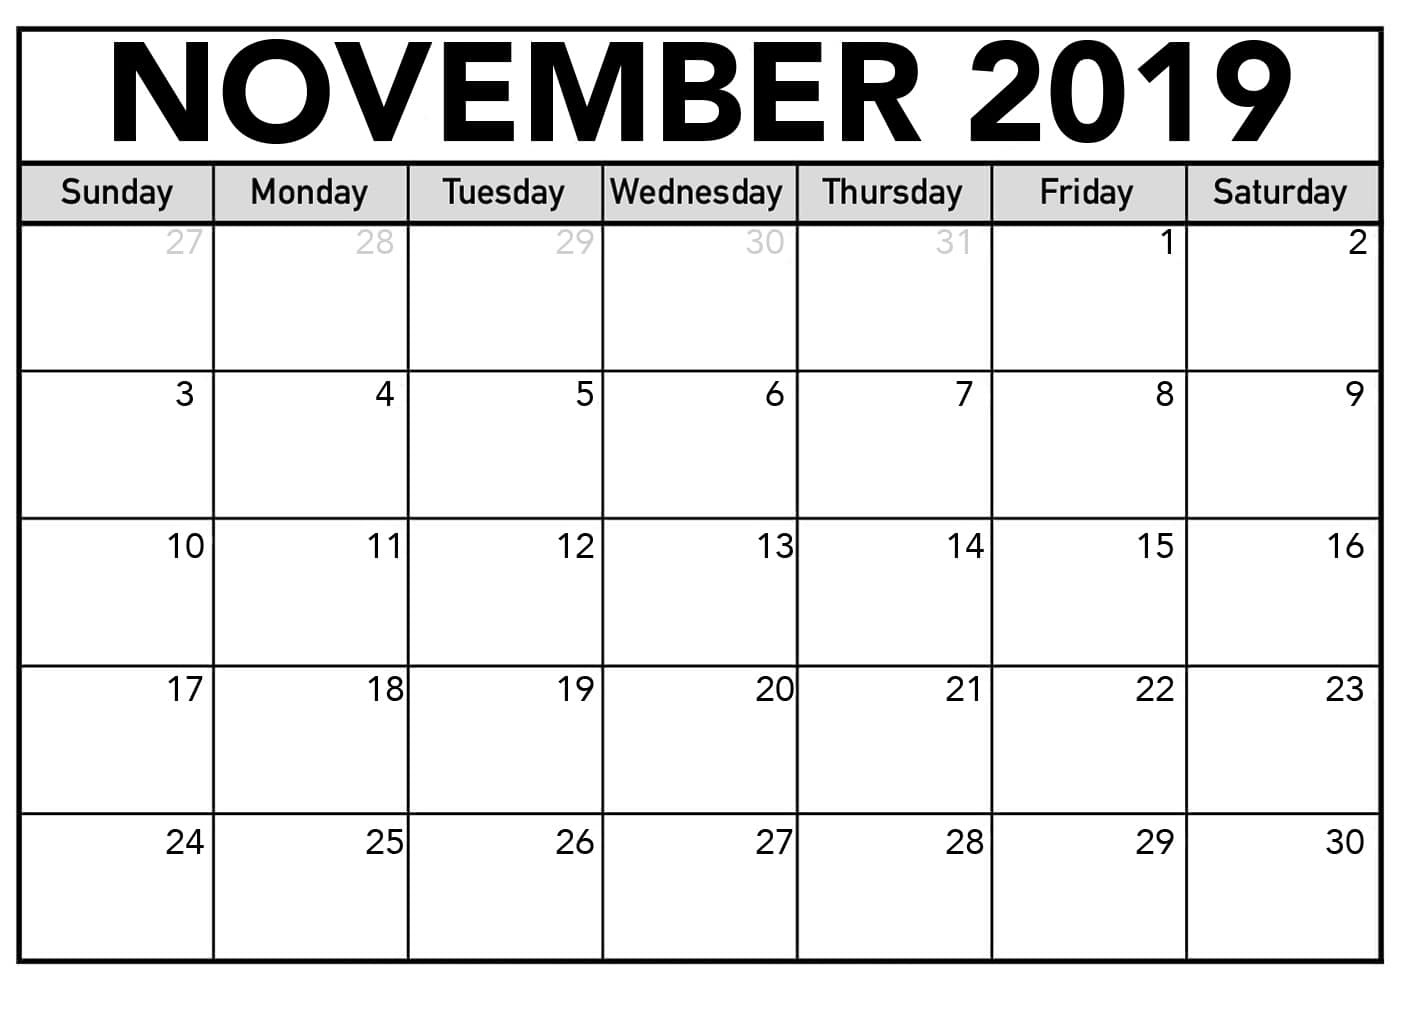 November 2019 Printable Calendar One Page Template - Latest